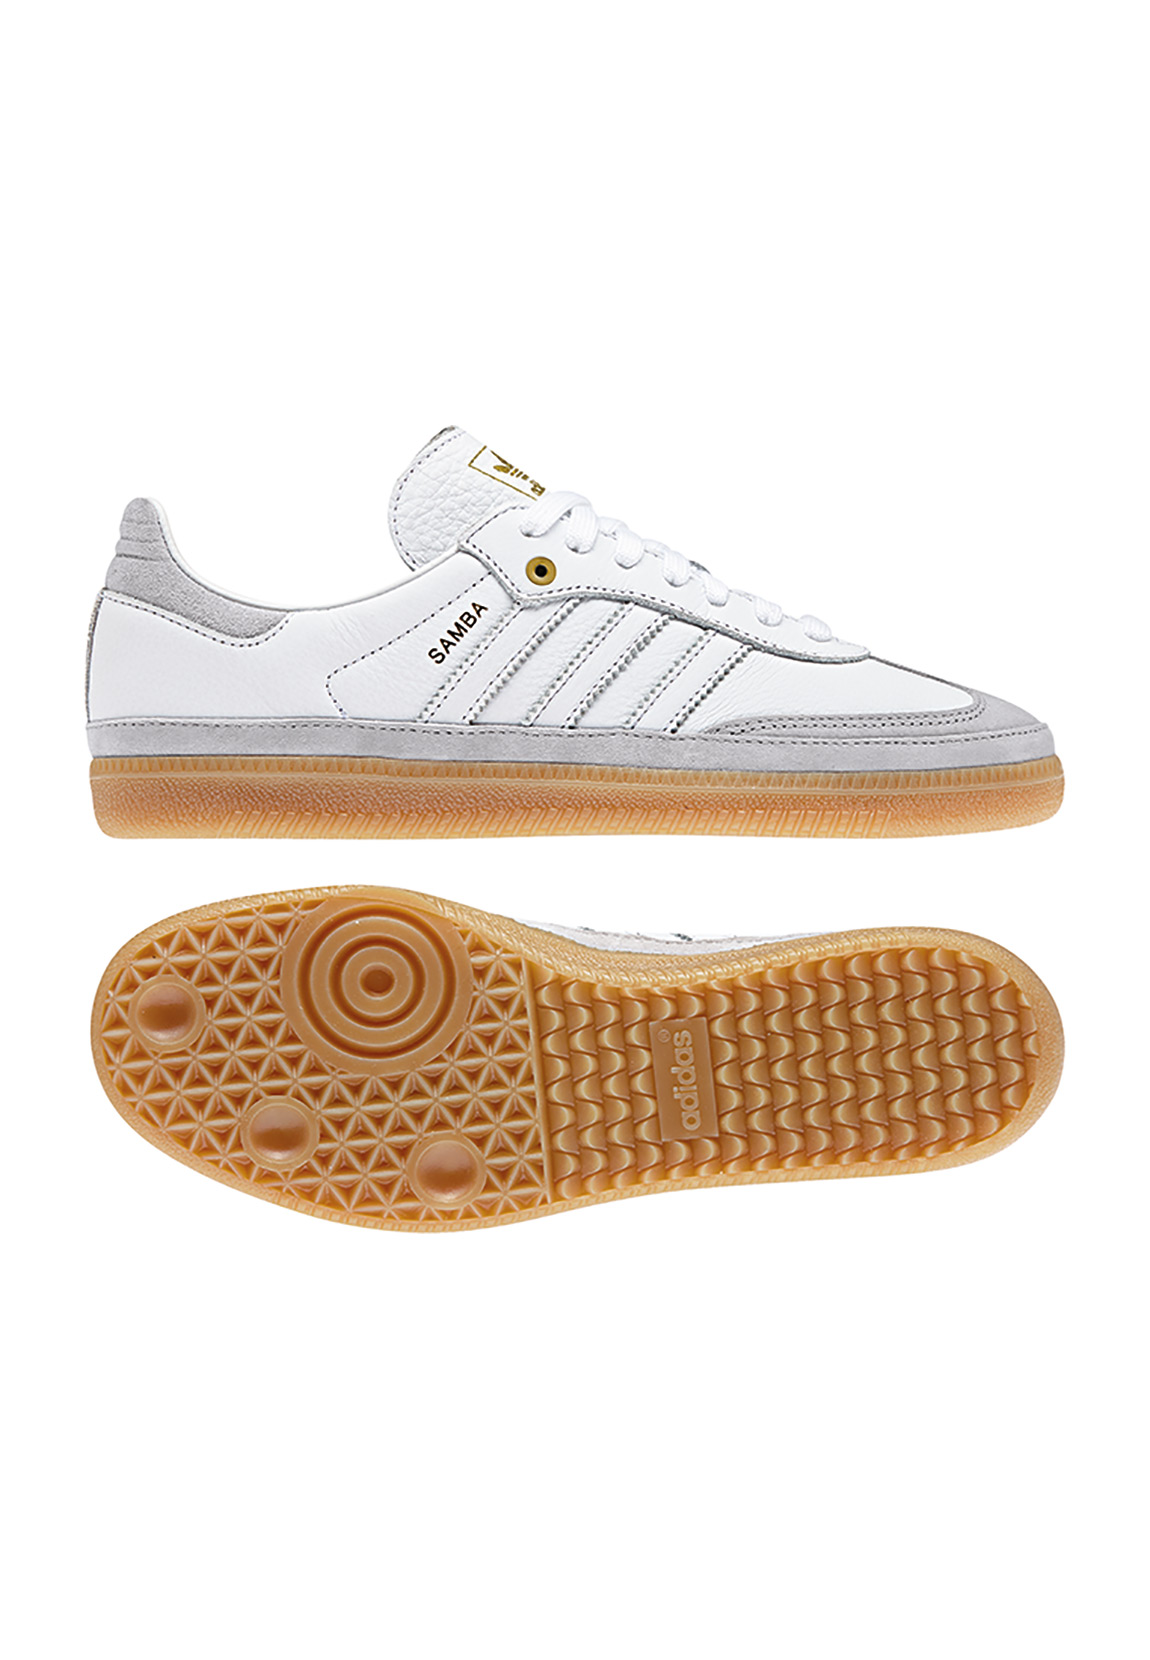 outlet store 7e0f6 63441 Manufacturer Adidas Originals